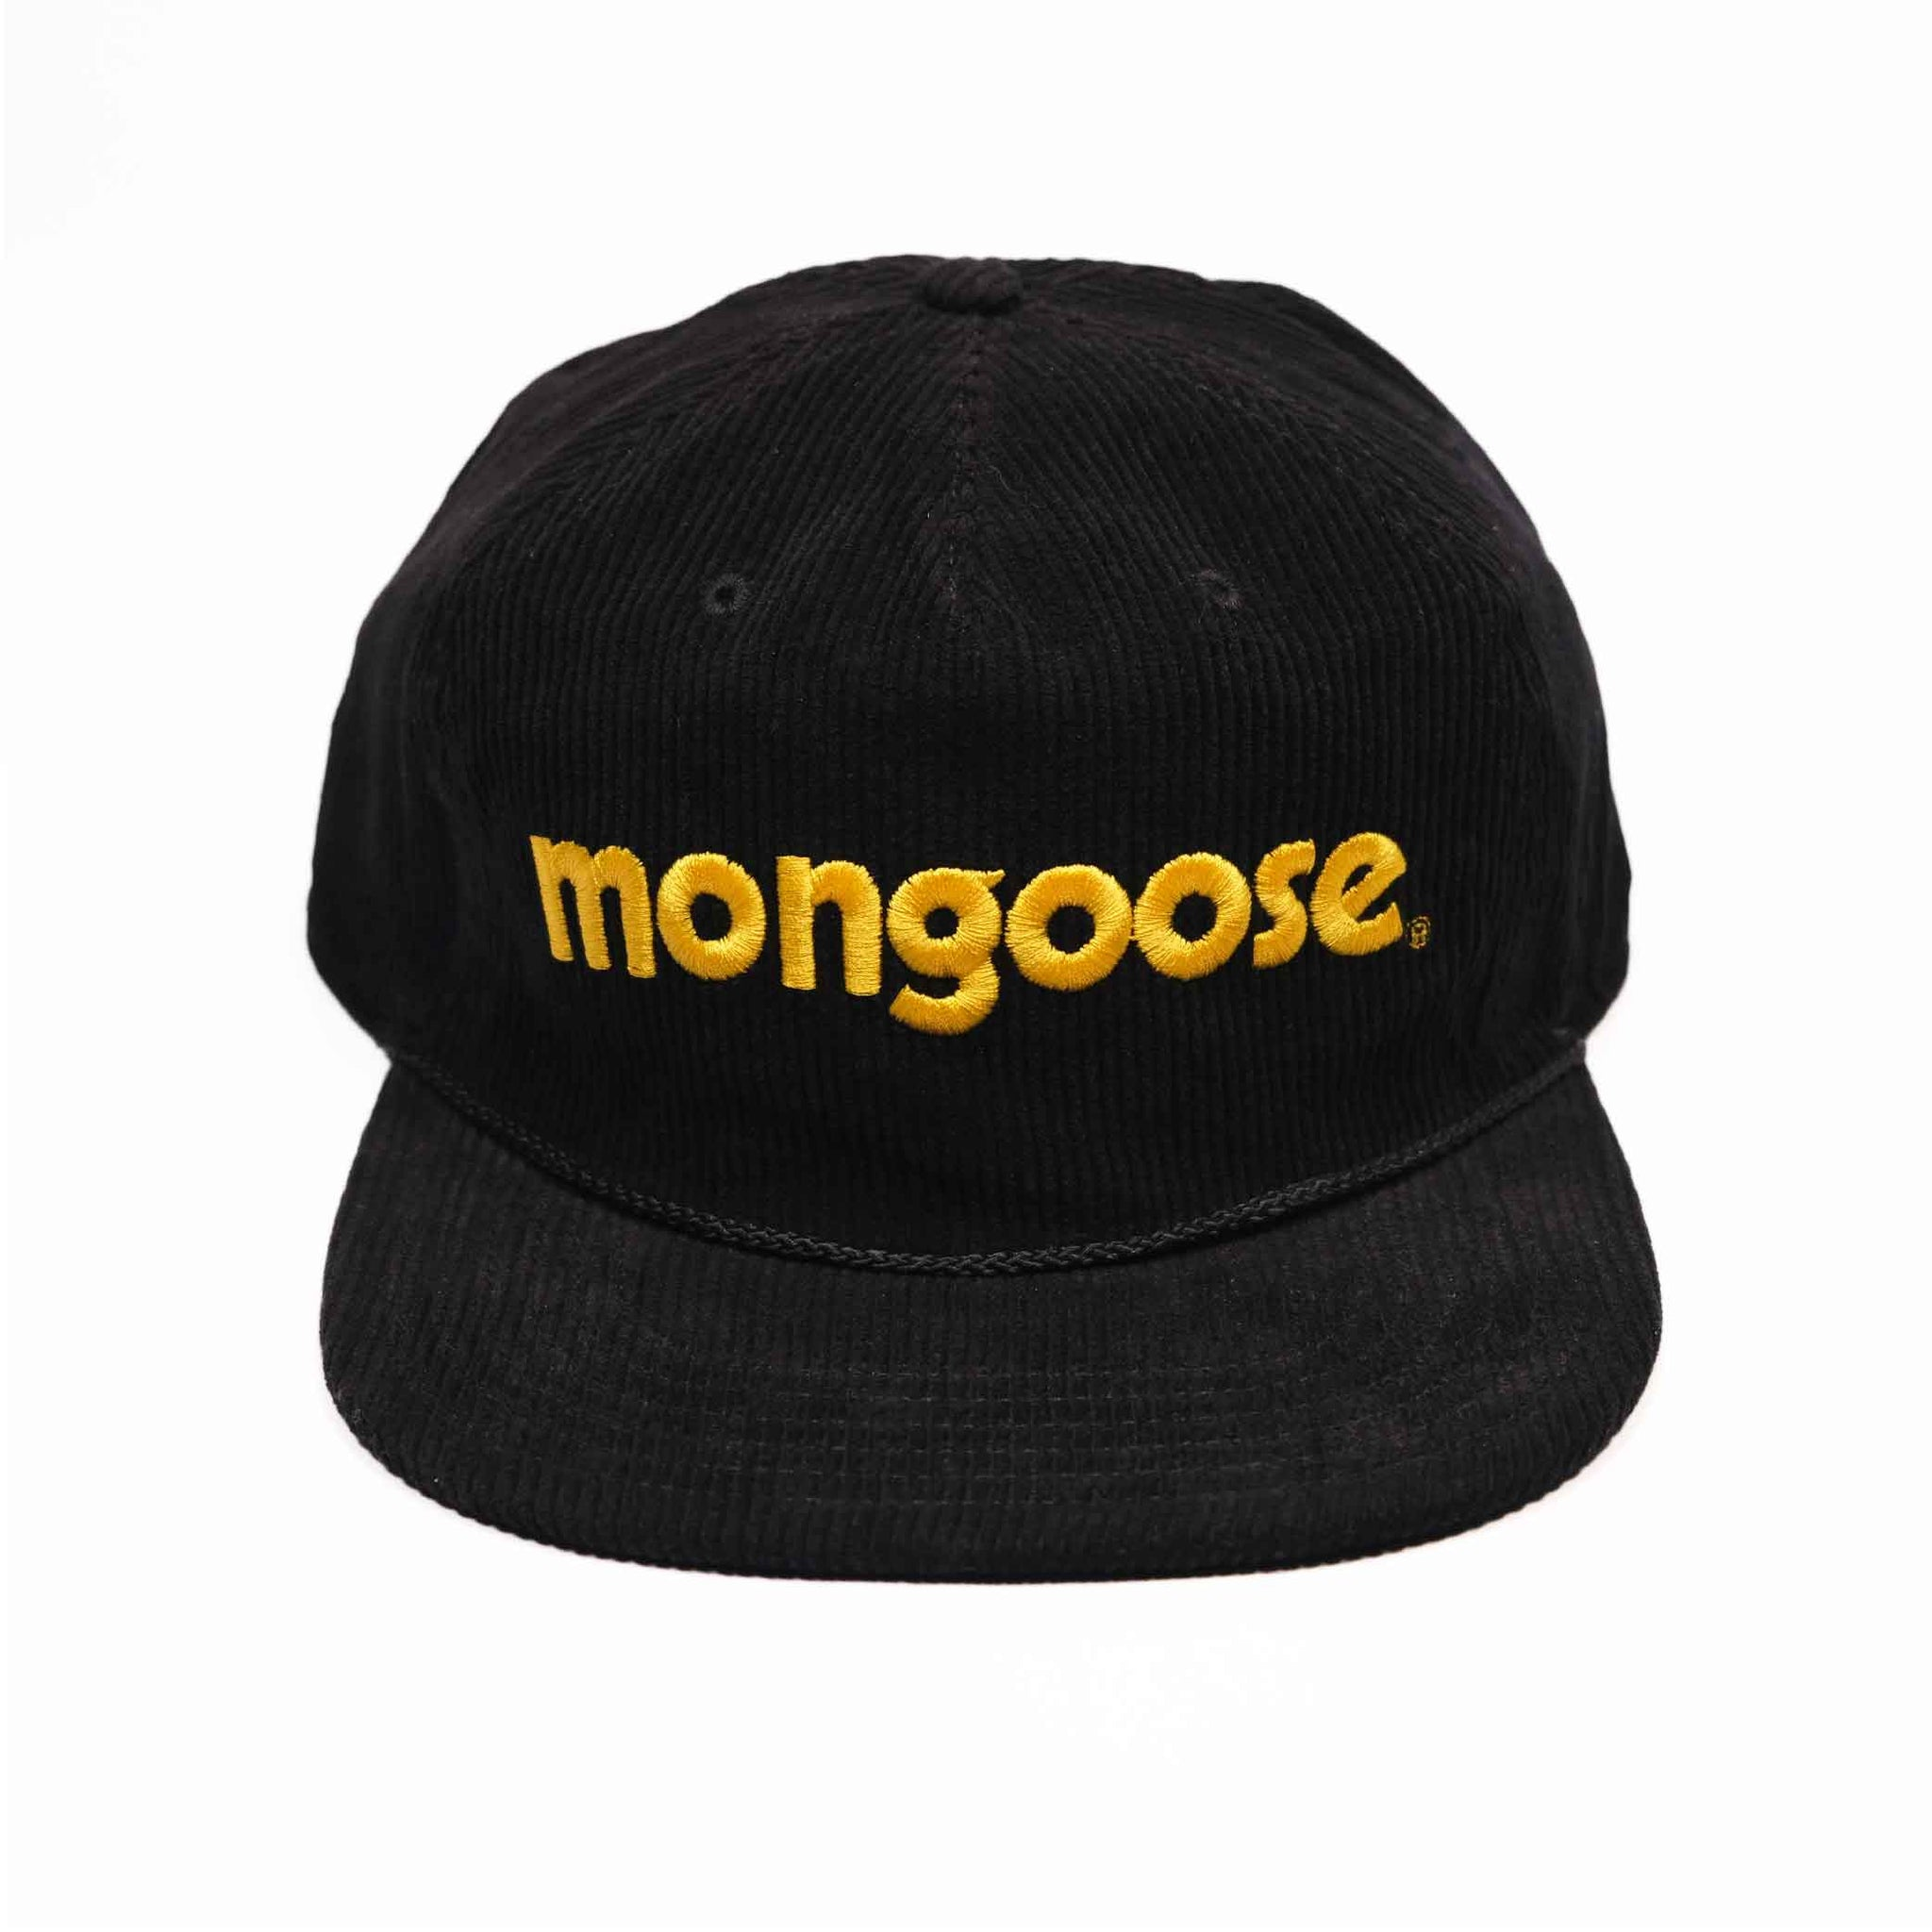 Mongoose Corduroy w/ Embroidery Hat - Black